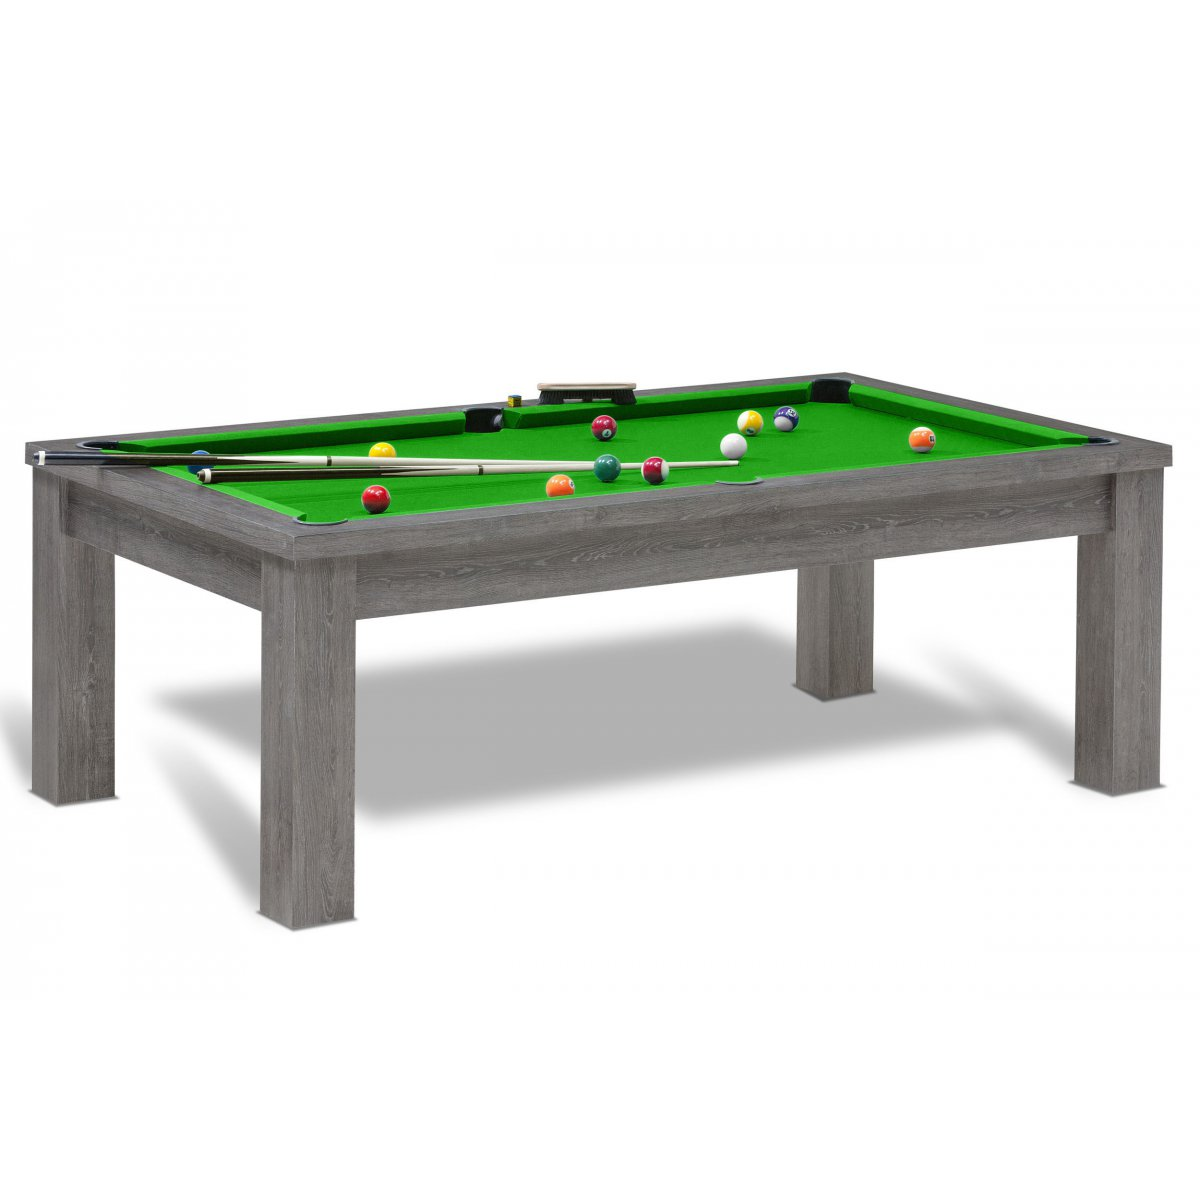 Billard am ricain table de jeu de billard us convertible for Table de salle a manger et billard